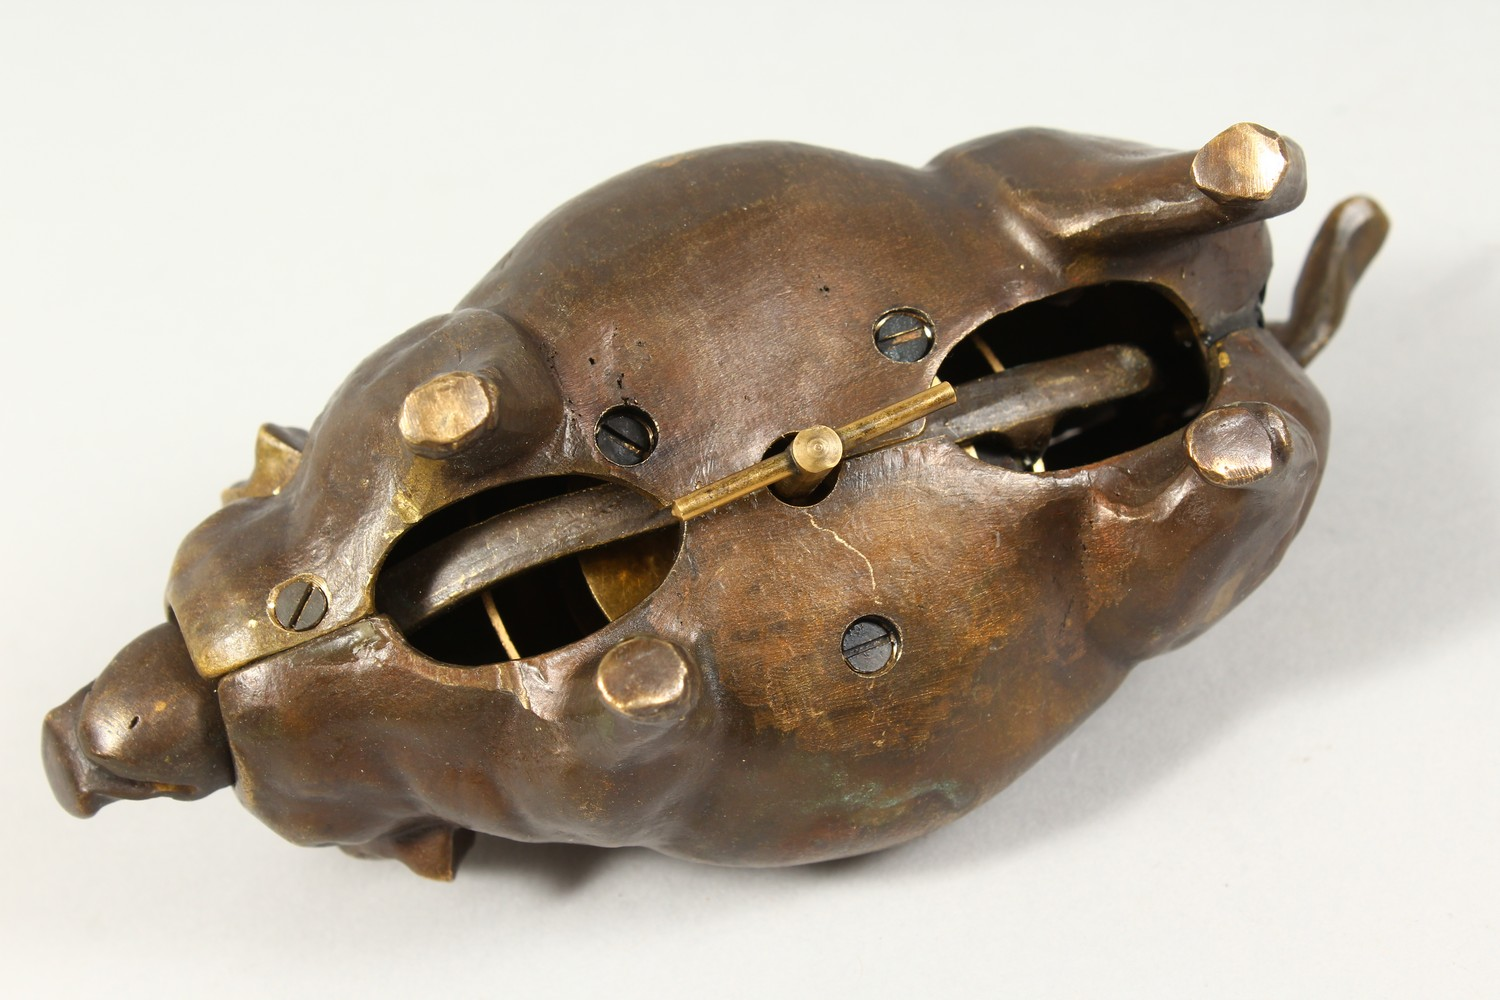 A BRONZE PIG SHAPE DESK BELL. 7ins long. - Image 5 of 5